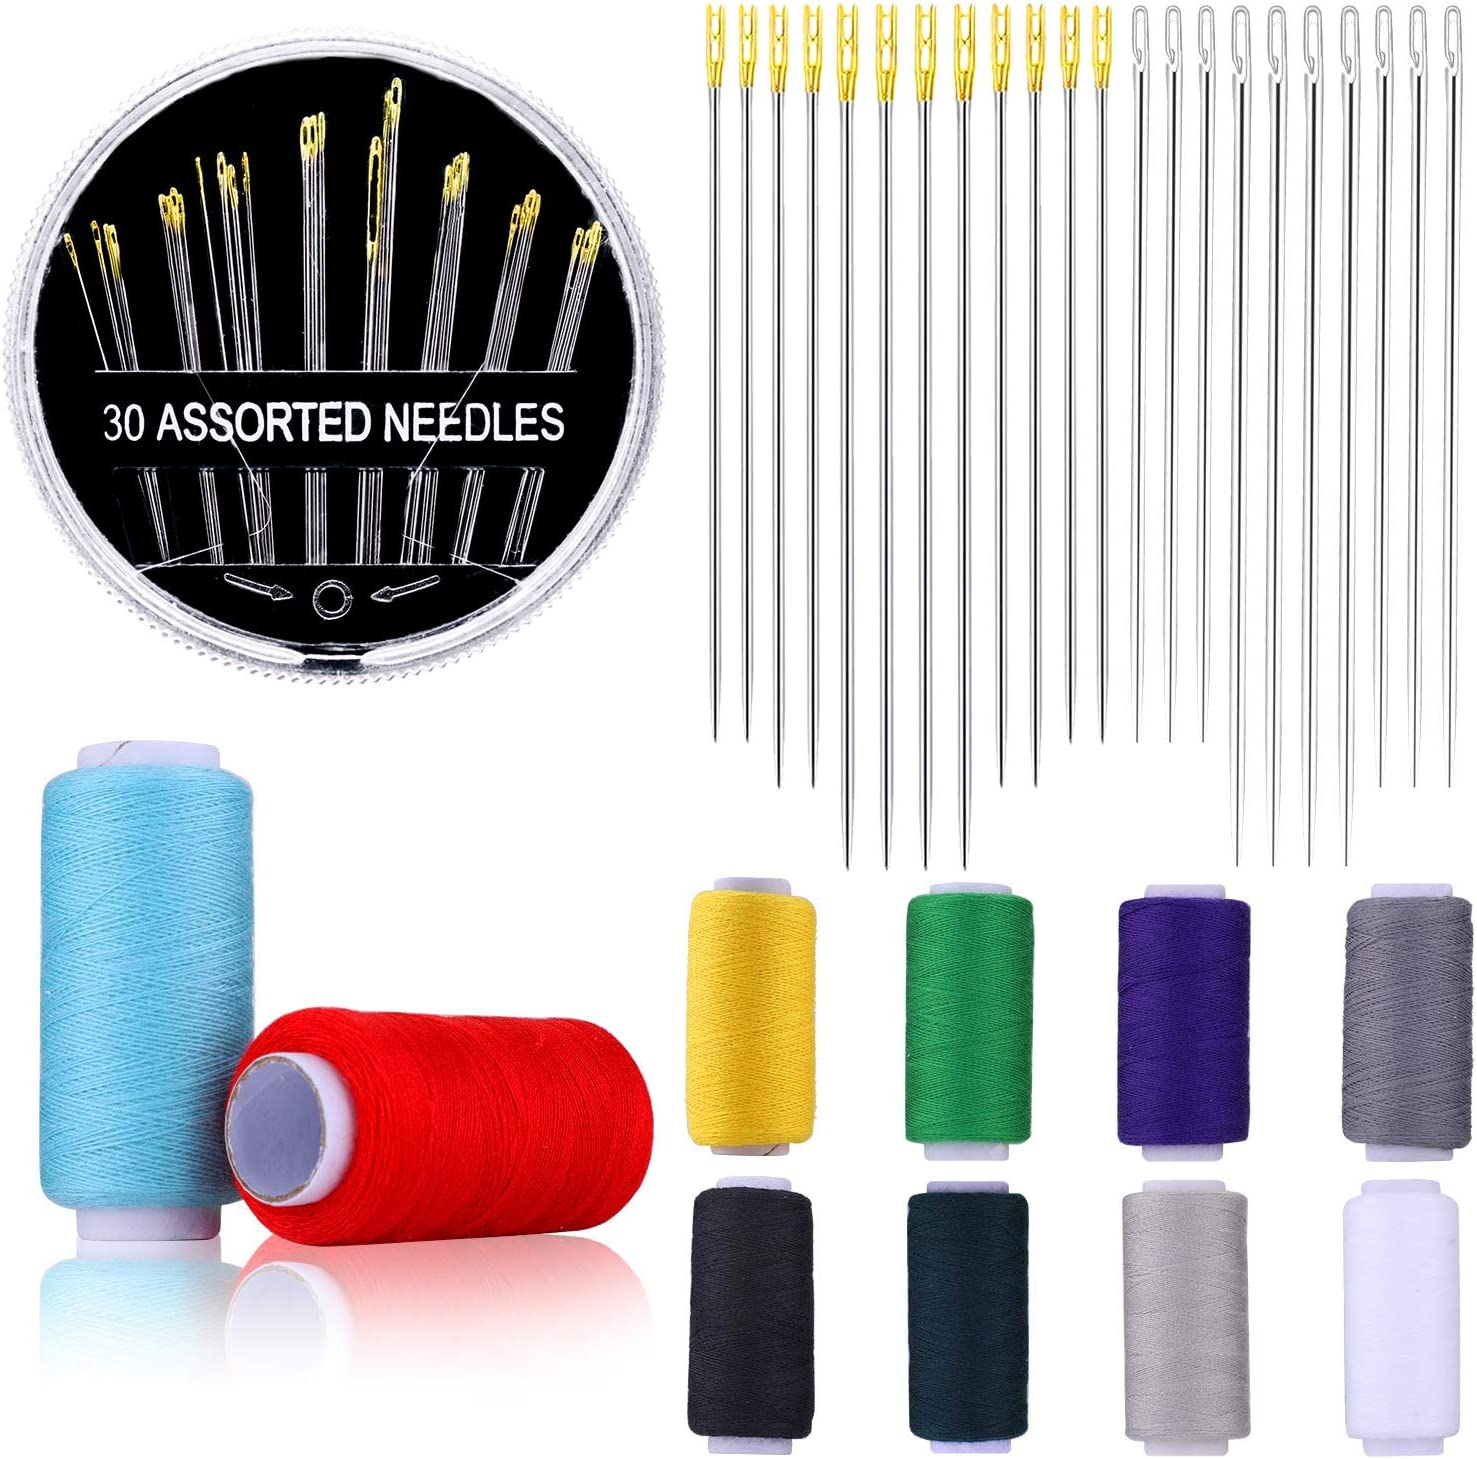 64 Pieces Hand Sewing Needles Set Including 30 Assorted Needles, 24 Blind Needles and 10 Spools Threads